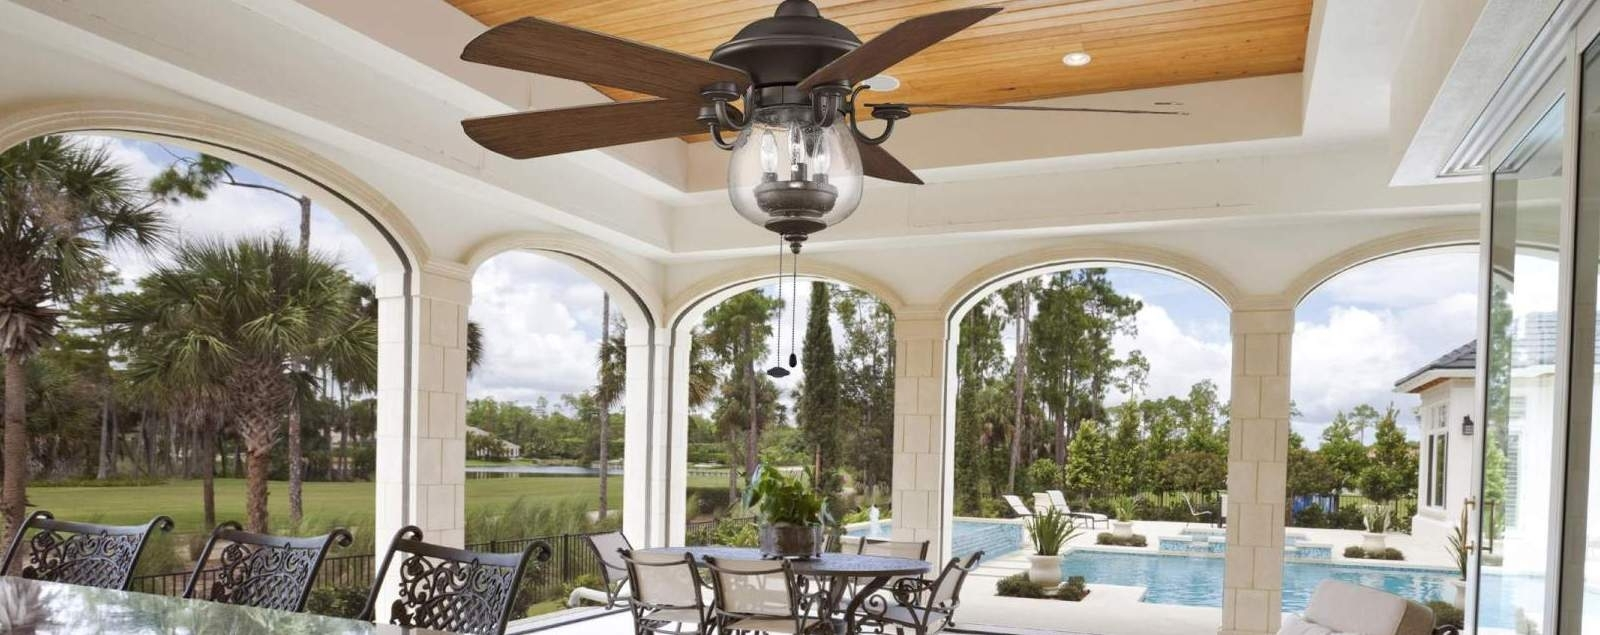 Outdoor Ceiling Fans With Lights Damp Rated Within Most Up To Date Outdoor Ceiling Fans – Shop Wet, Dry, And Damp Rated Outdoor Fans (Gallery 10 of 20)